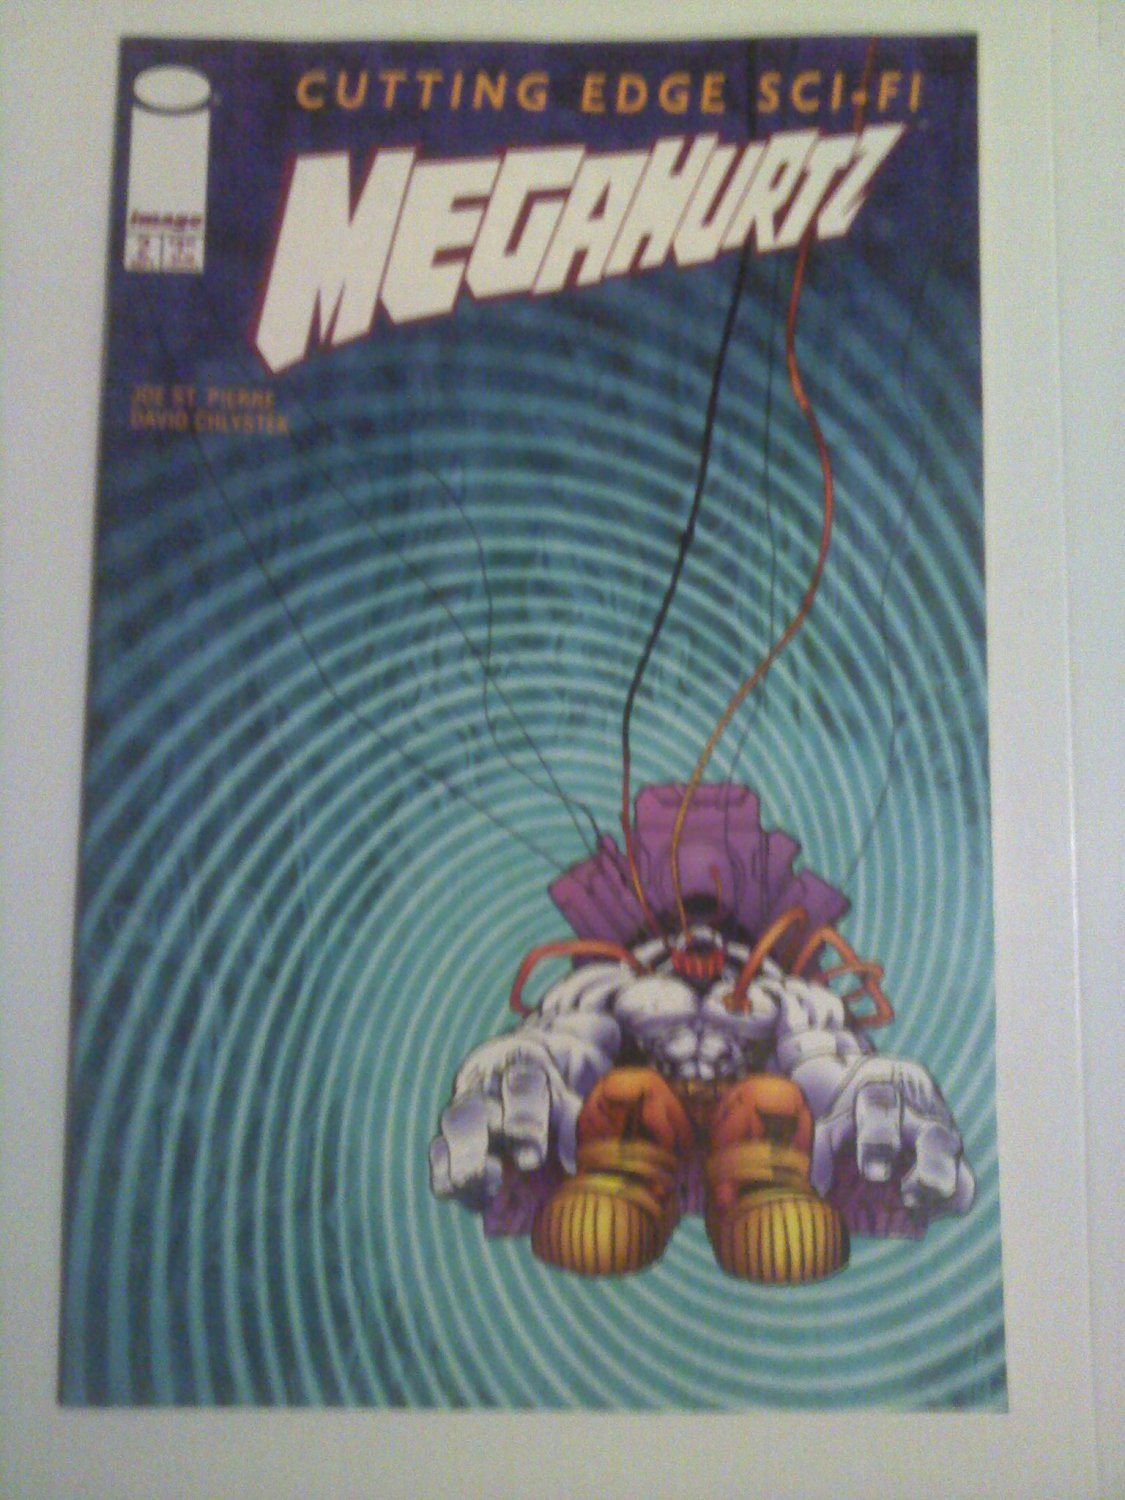 Megahurtz #2 Cutting Edge Sci-Fi